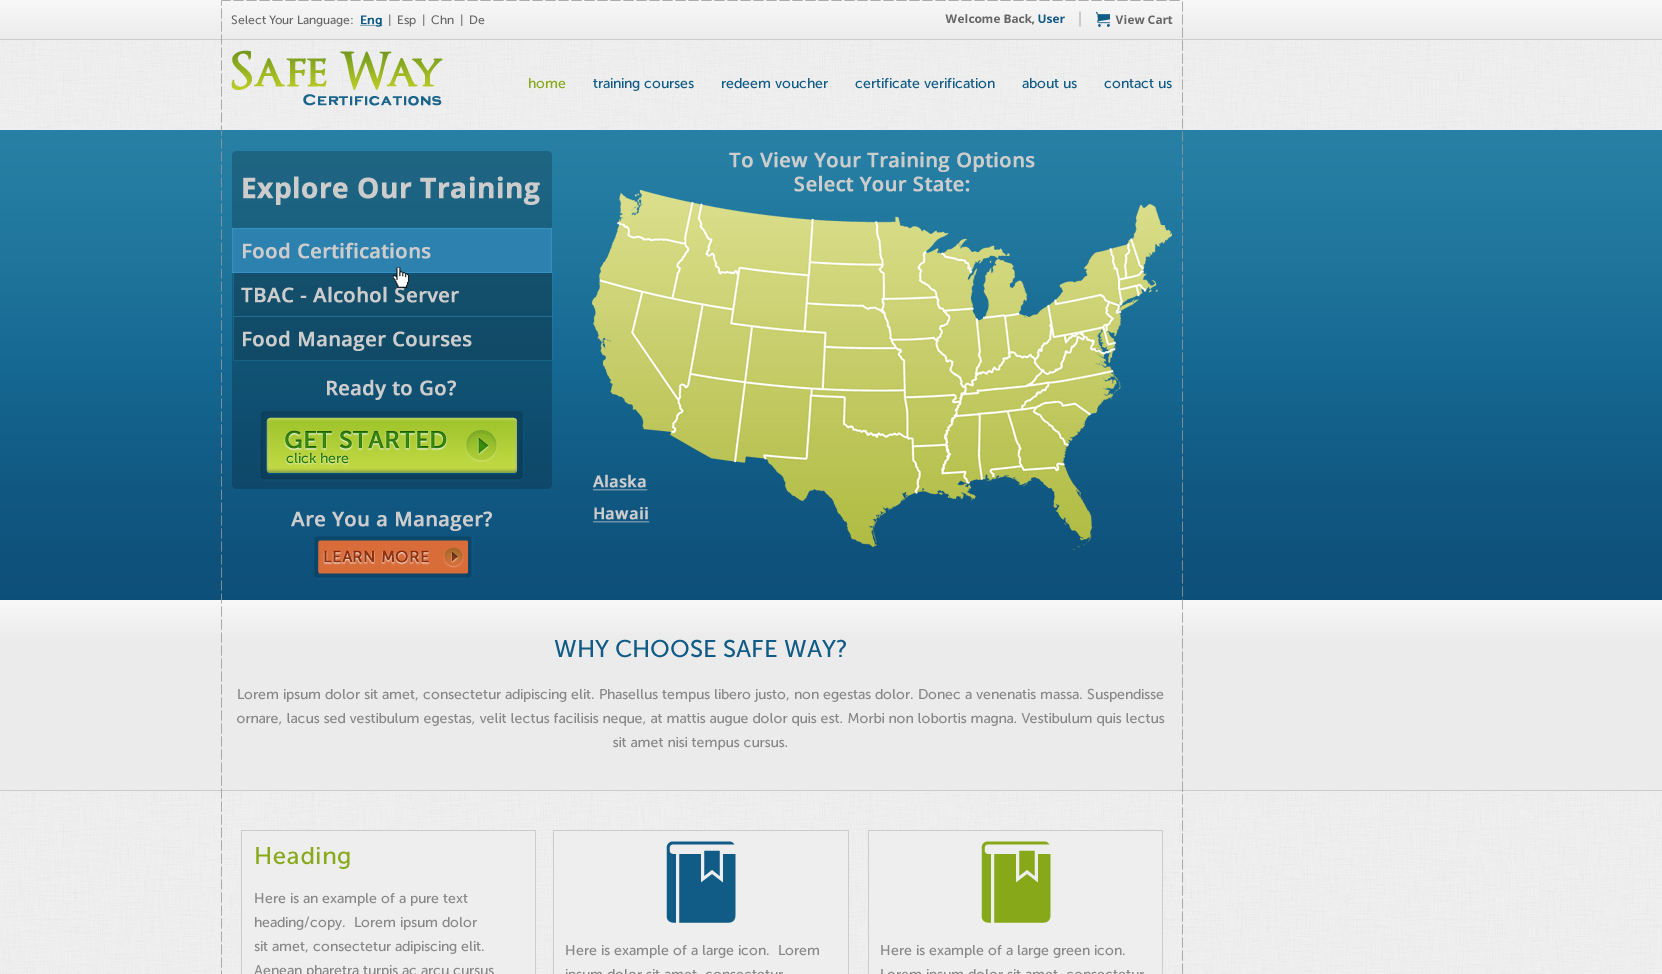 Website Visual Design for Professional Training Company